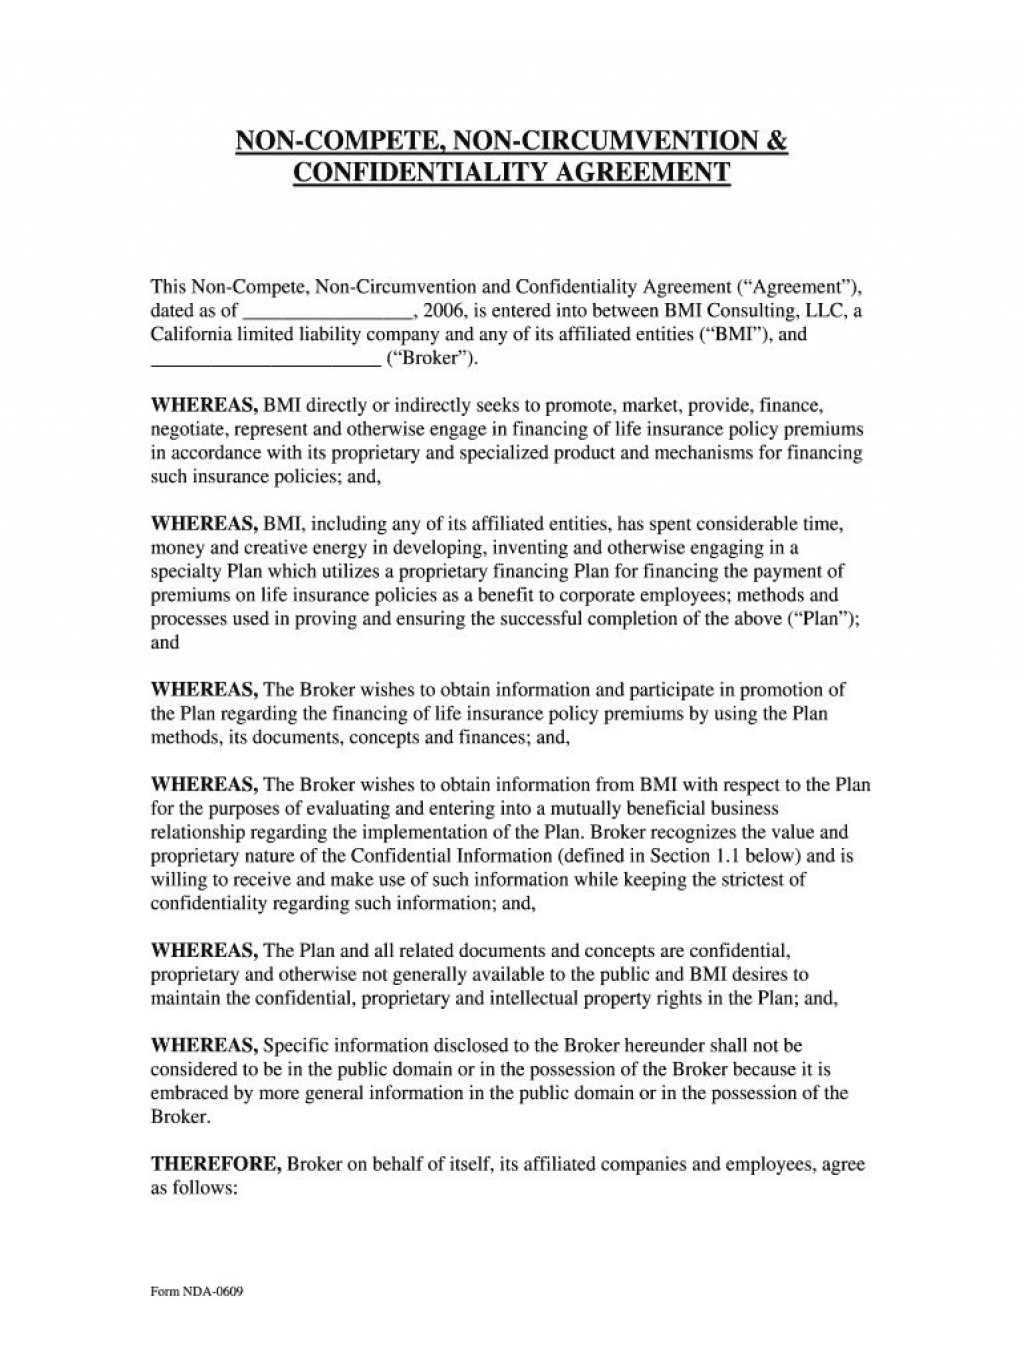 005 Fearsome Non Compete Agreement Florida Template Highest Clarity Large